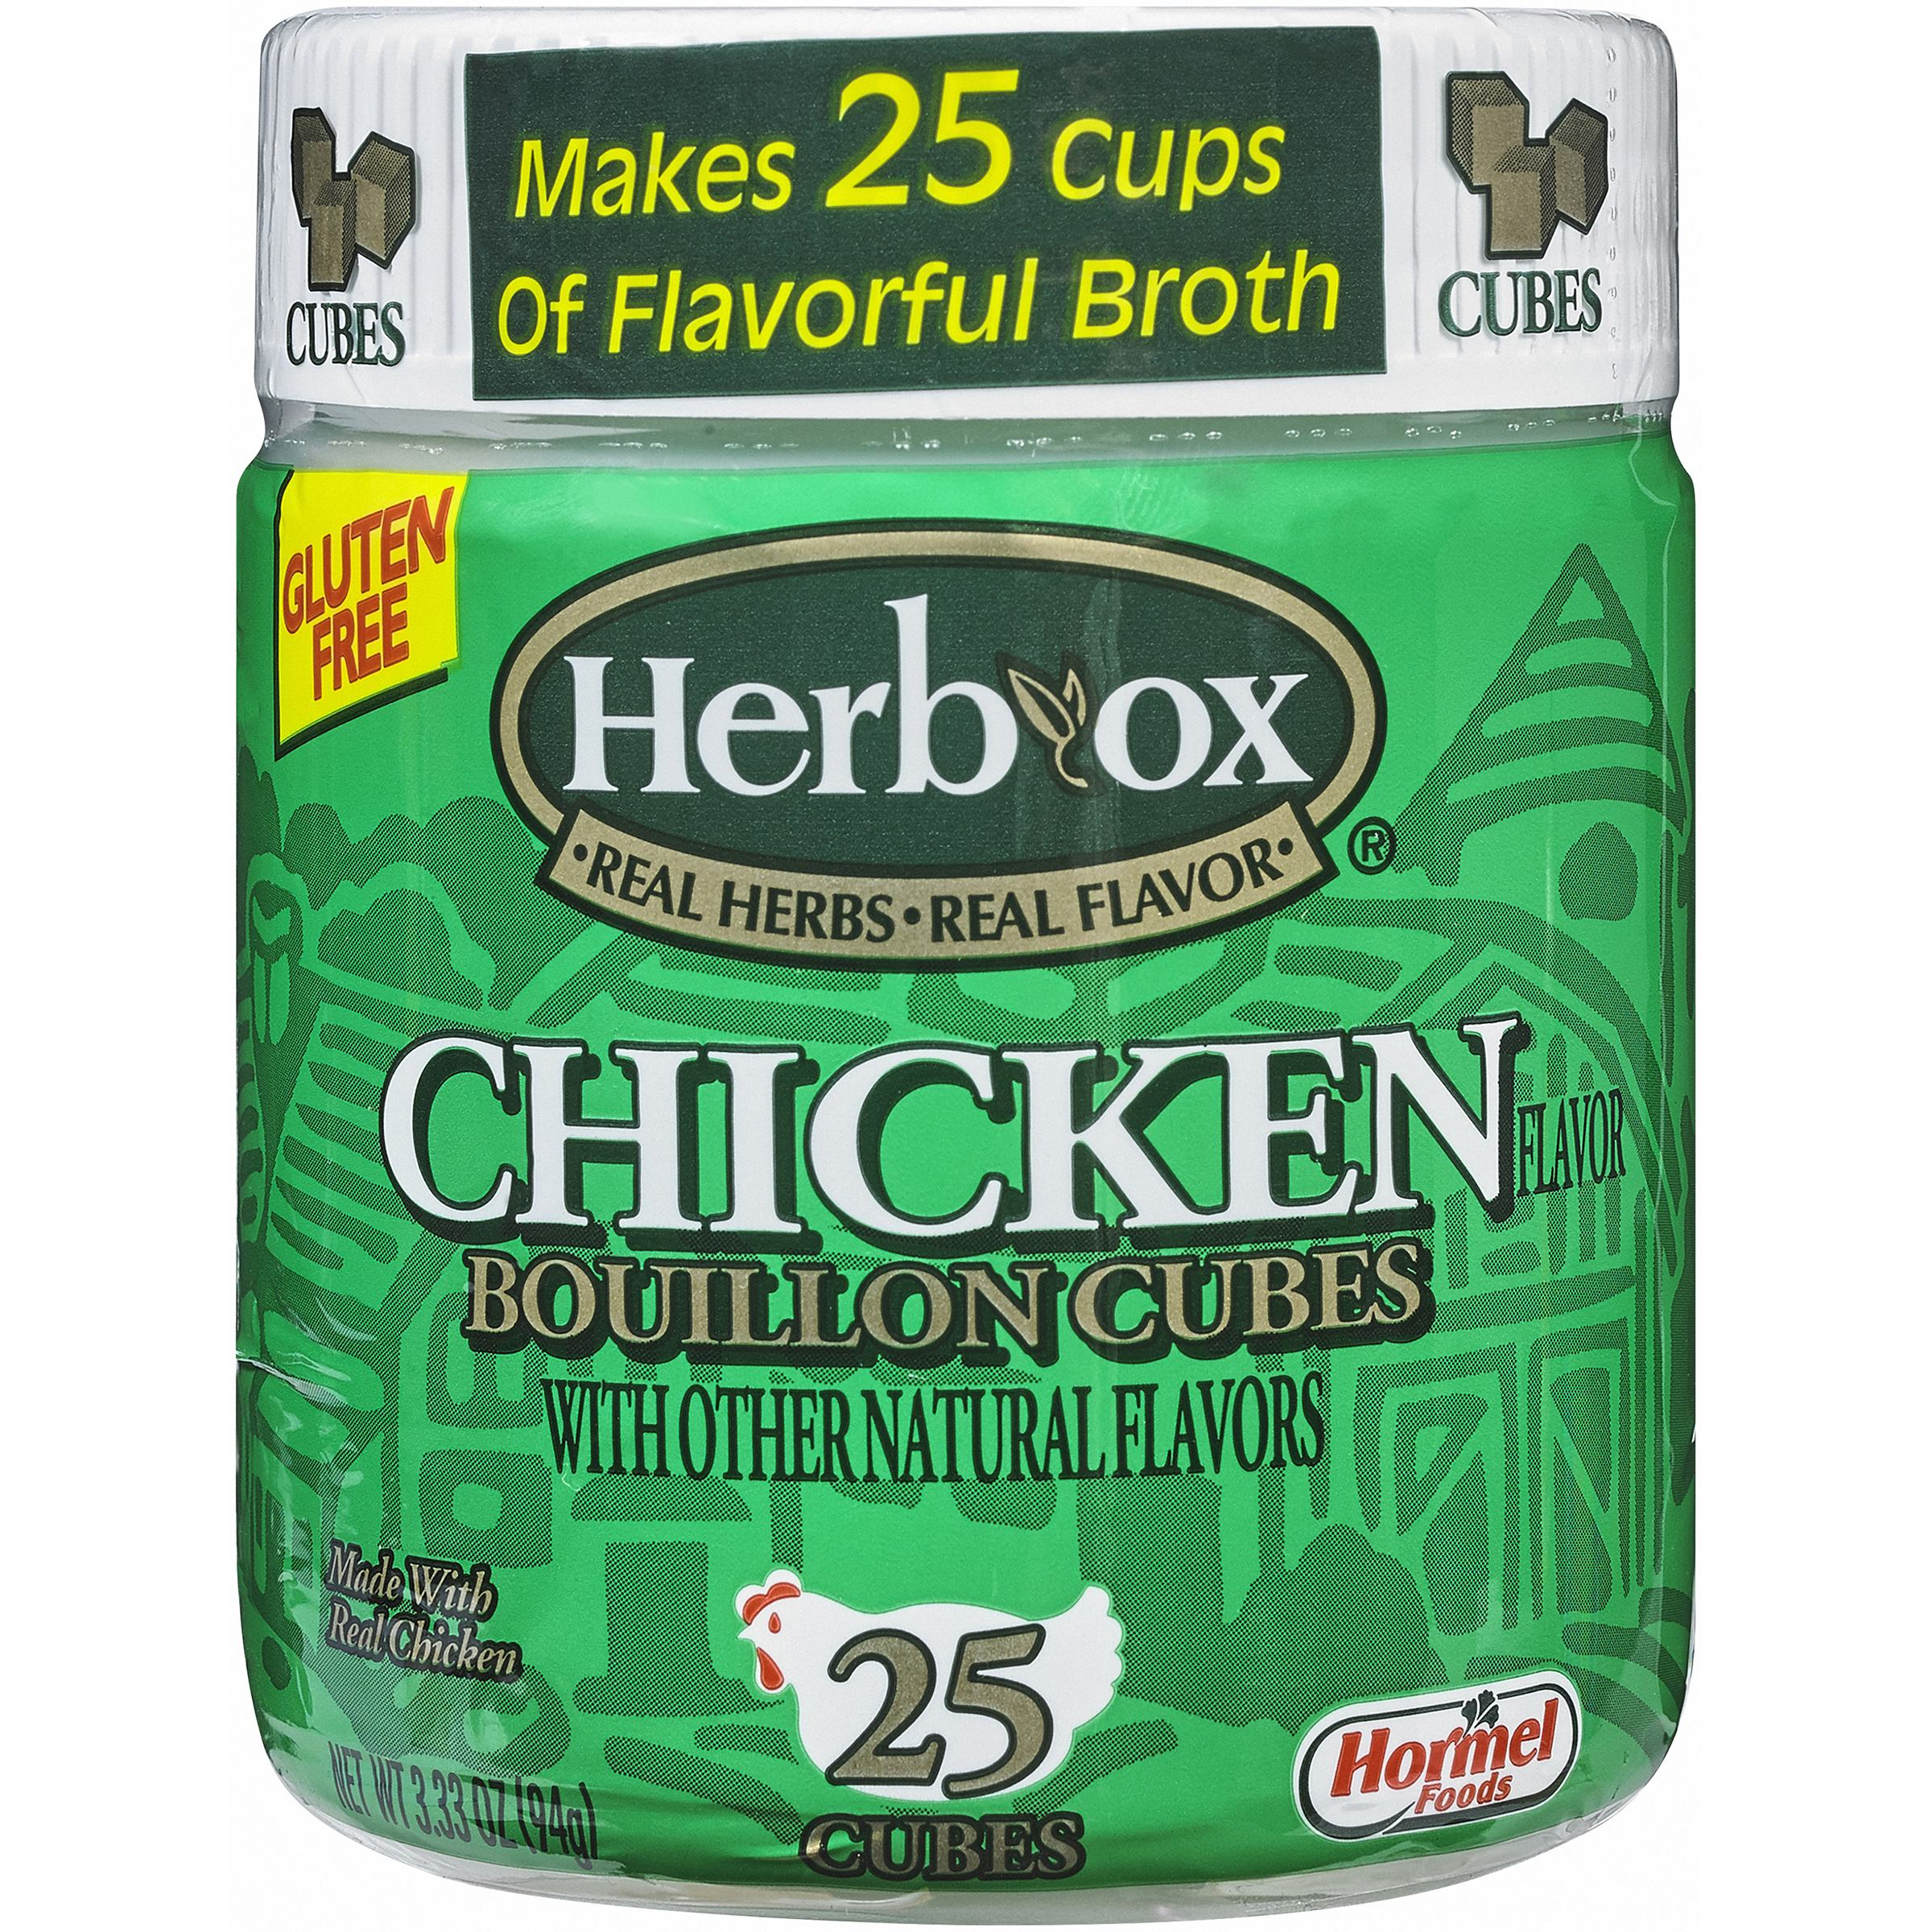 Herb-Ox Chicken Bouillon Cubes, 25 count, 3.33 oz